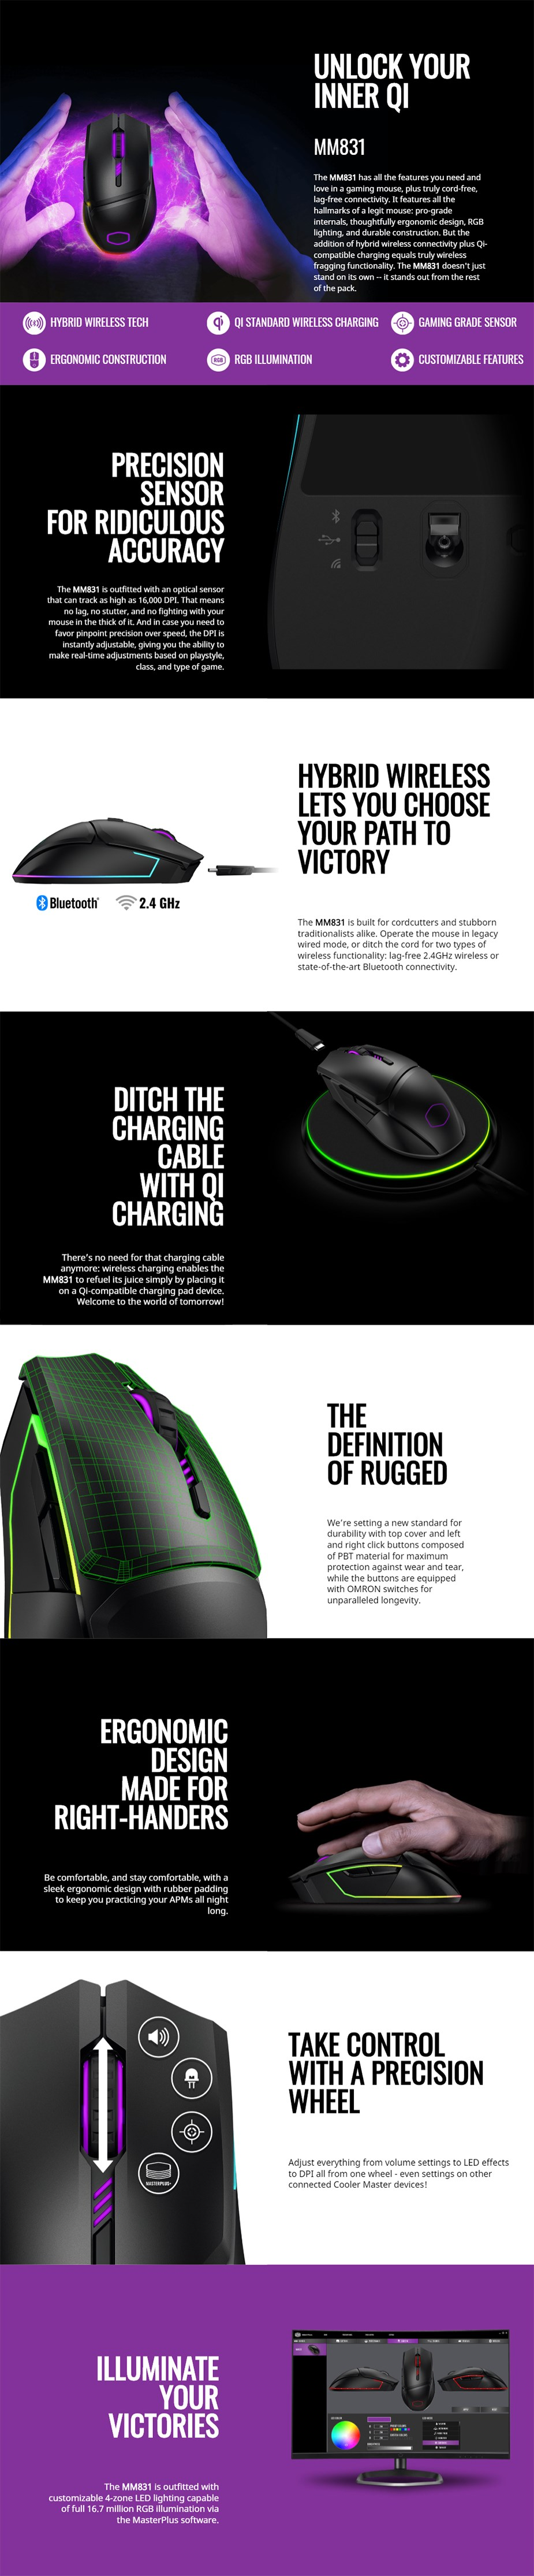 Cooler Master MasterMouse MM831 RGB Wireless Optical Gaming Mouse - Overview 1